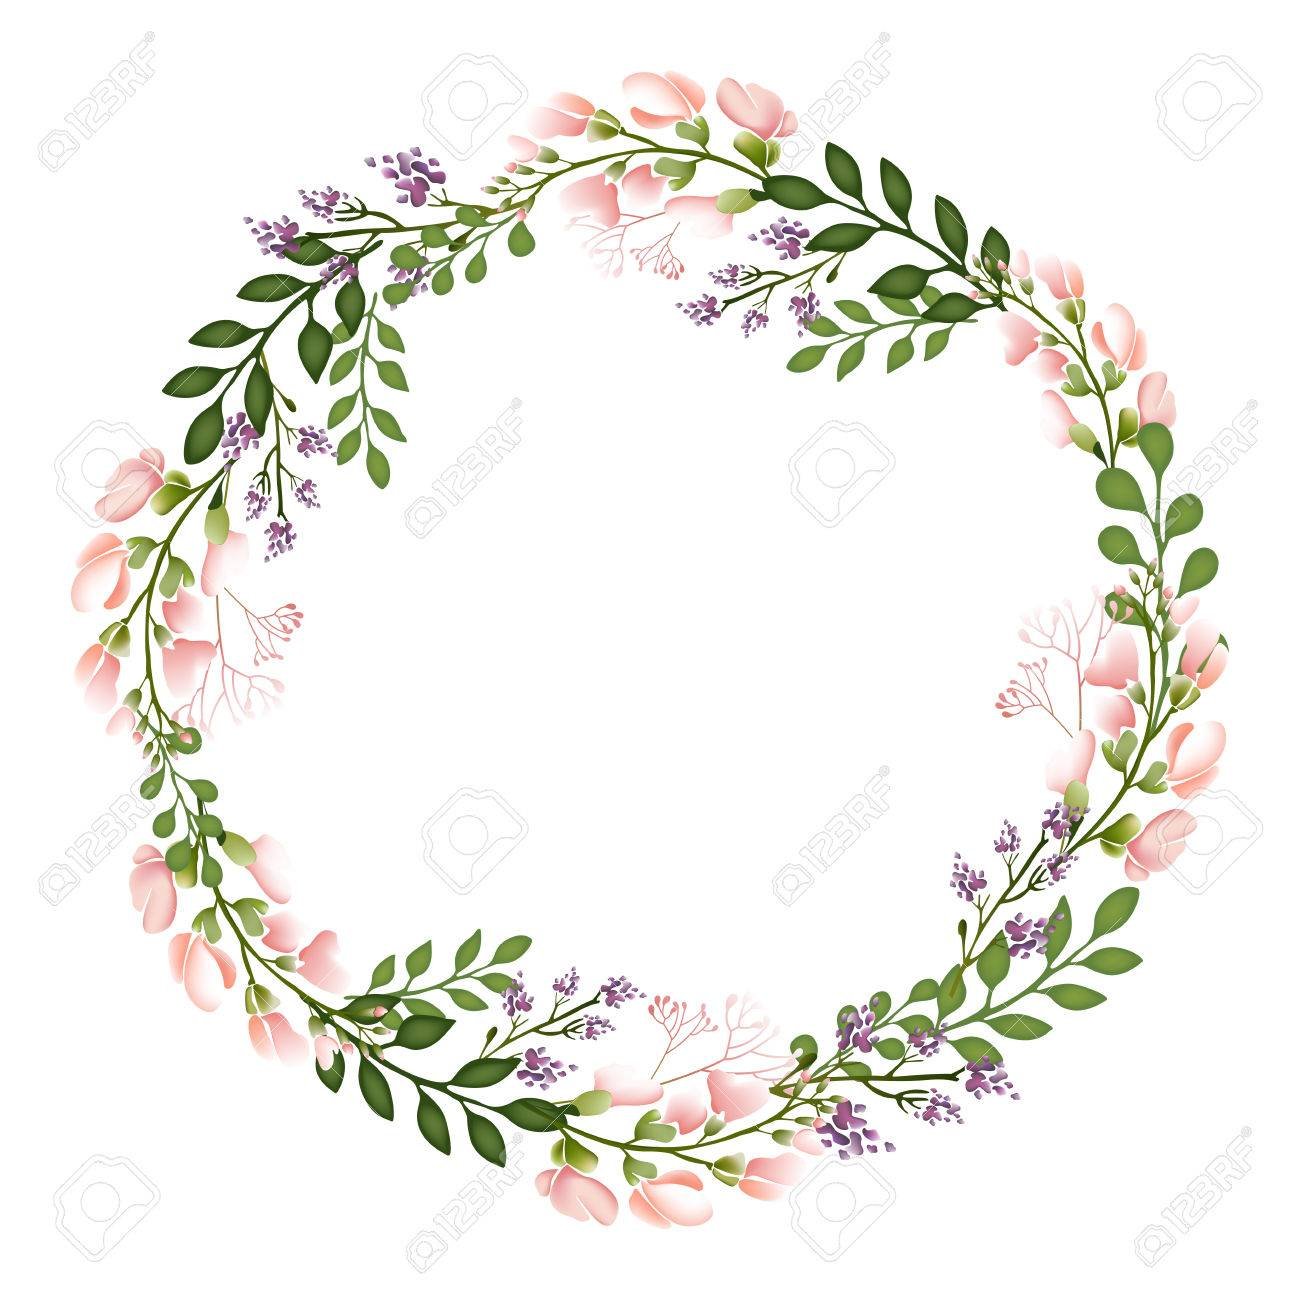 Autumn Floral Frame Collections Stock Photo, Picture And Royalty ...